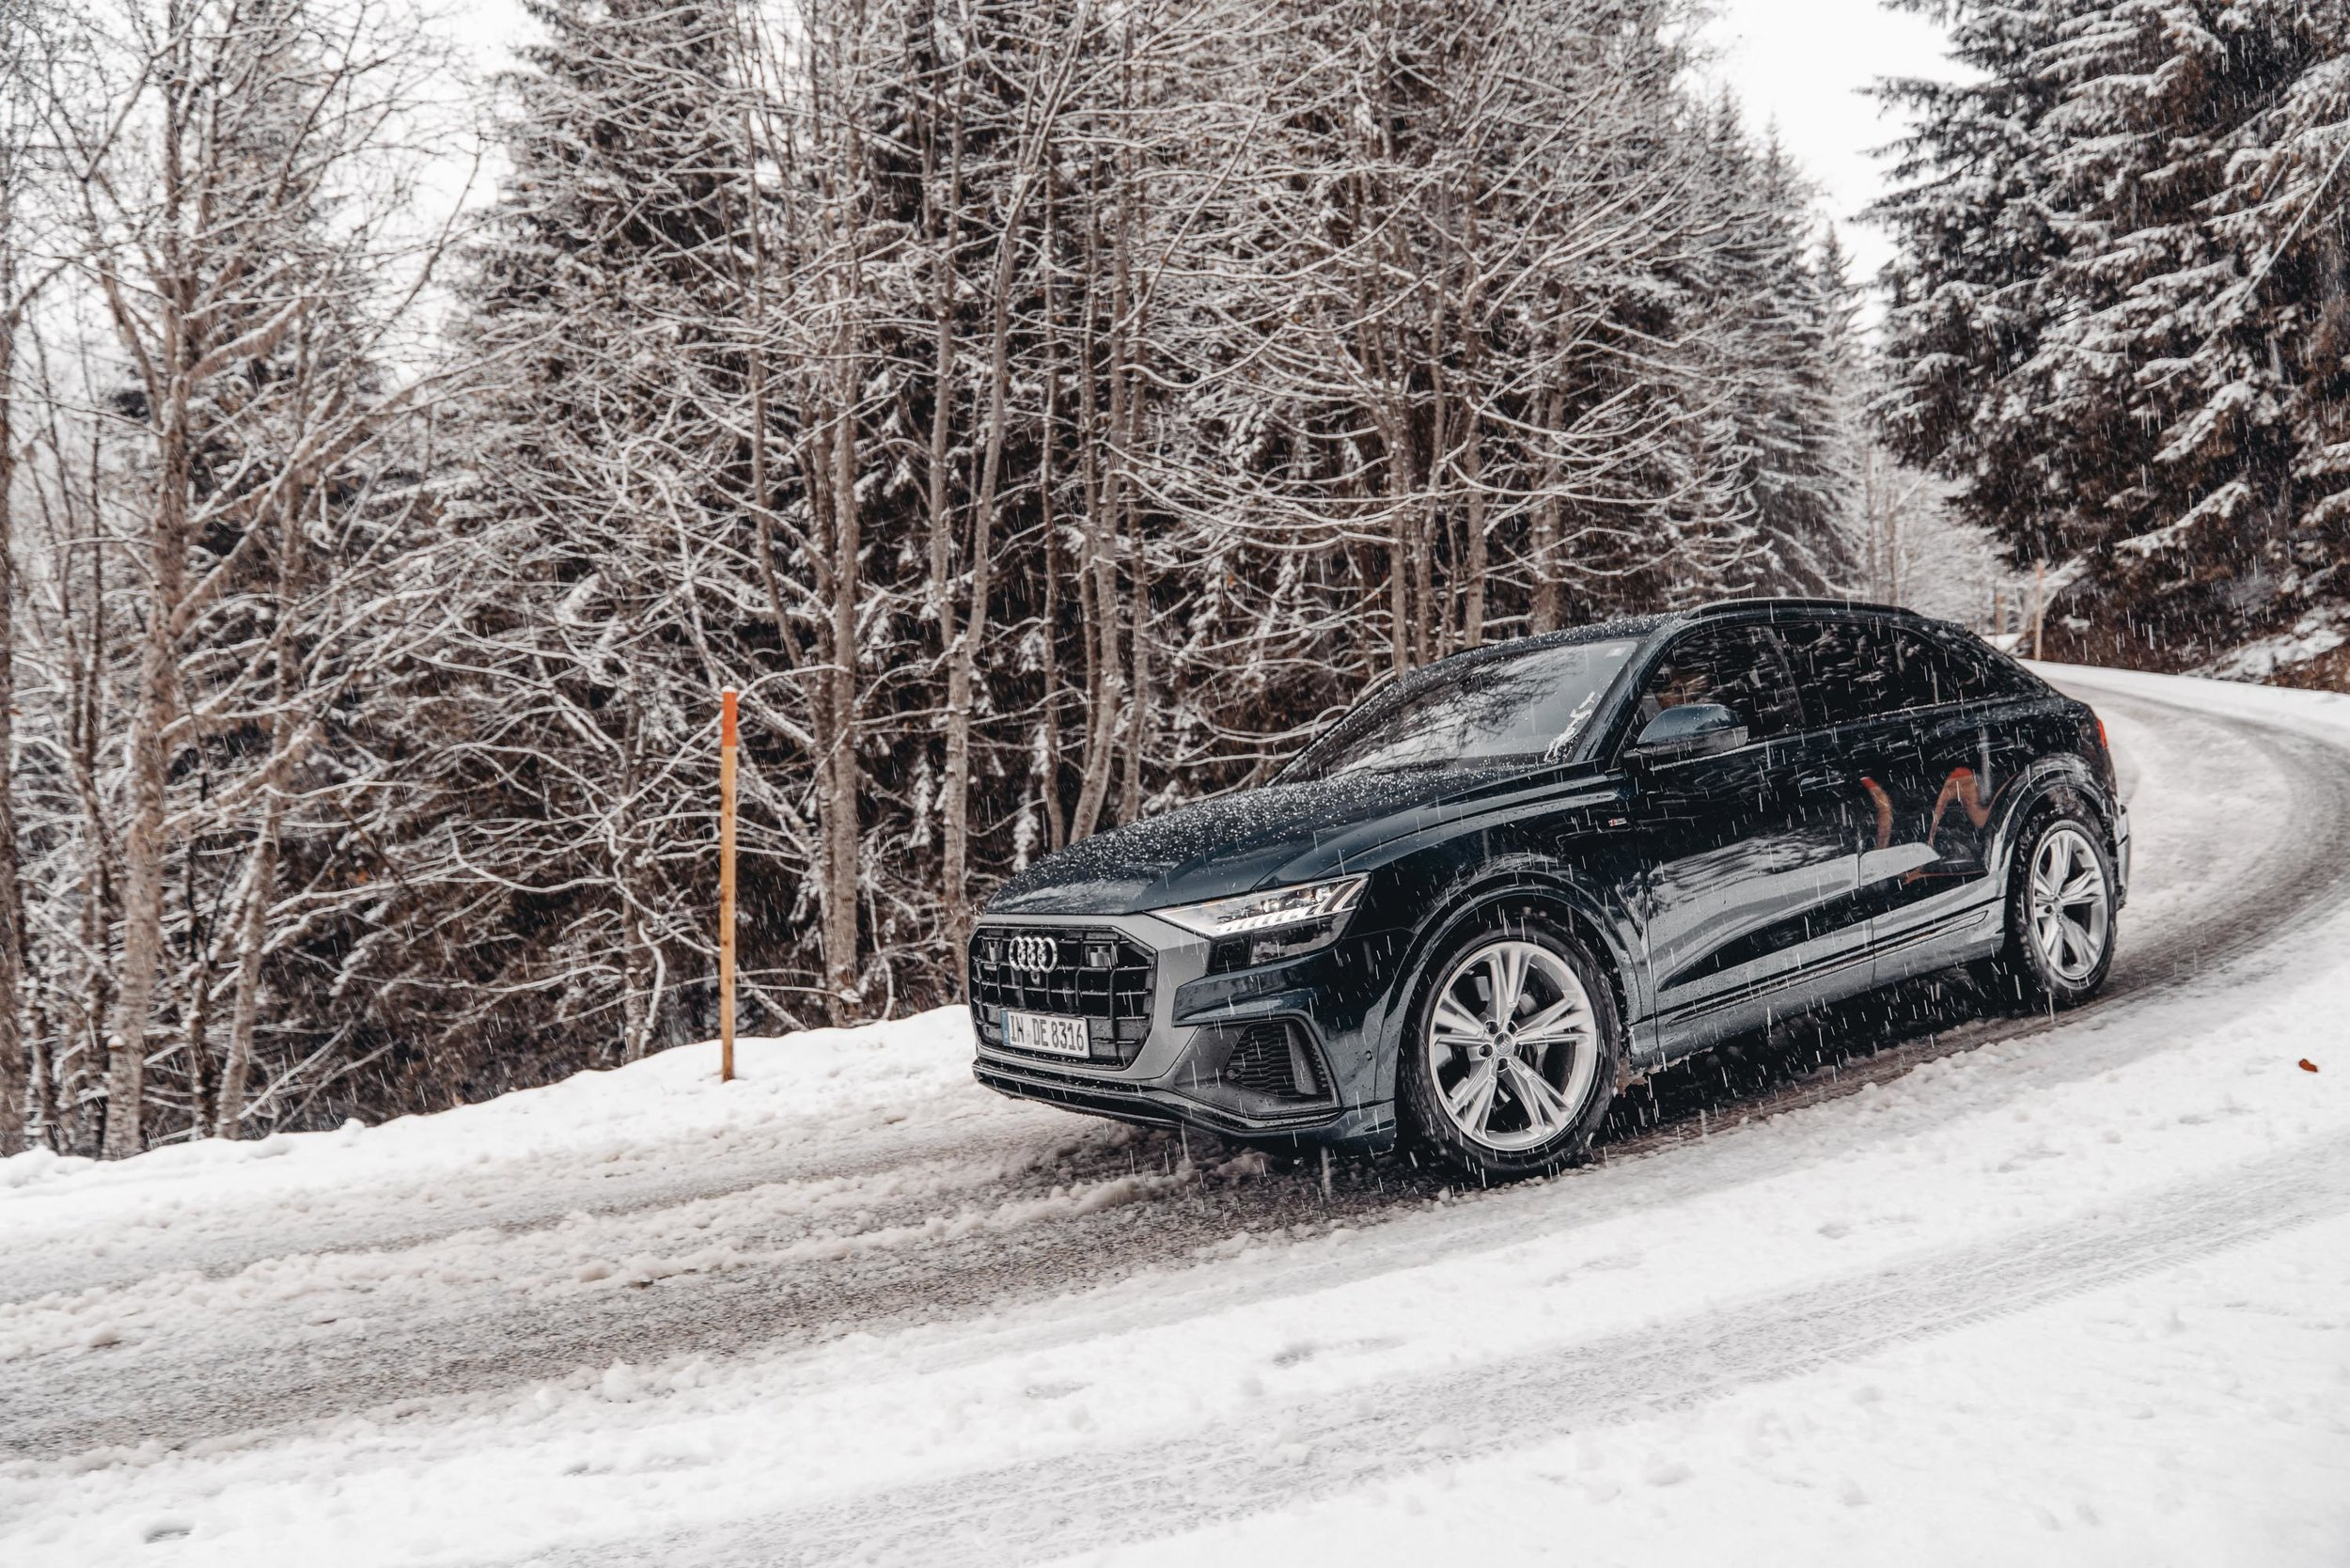 Maximilian-Otto_Best-of-the-Alps_Roadtrip_Winter-2018_21.jpg